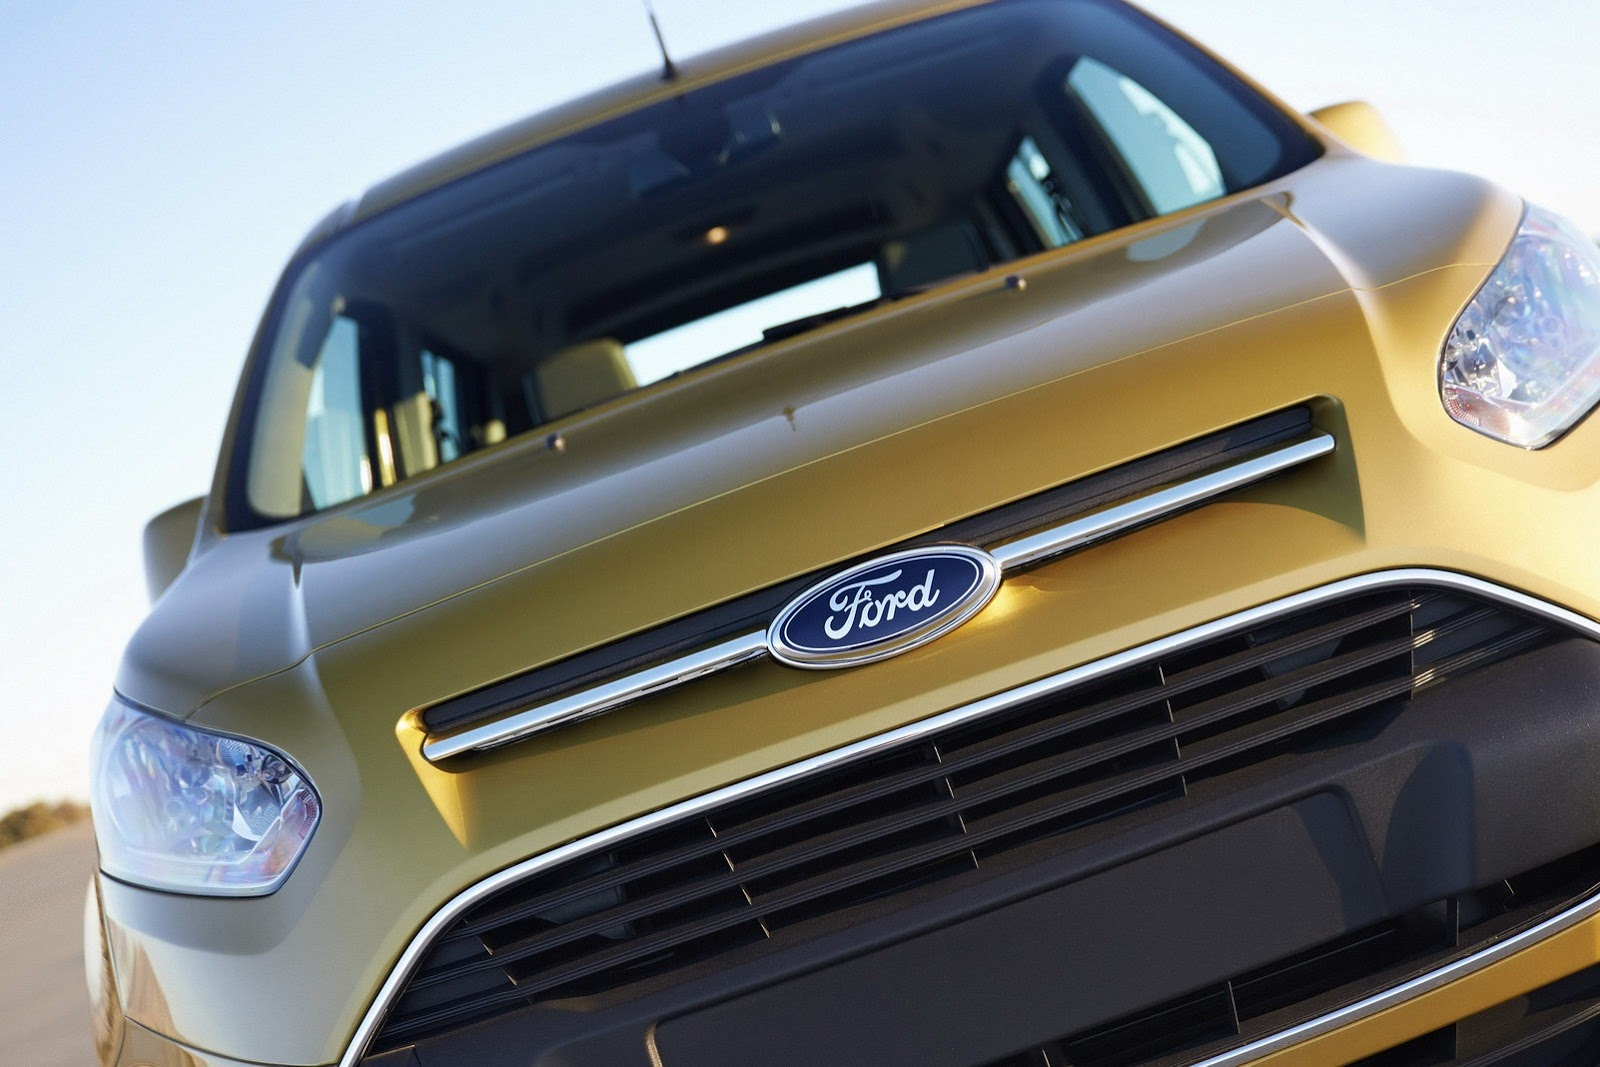 2014 Ford Transit Connect Wagon Review Ratings Specs | Auto Design ...